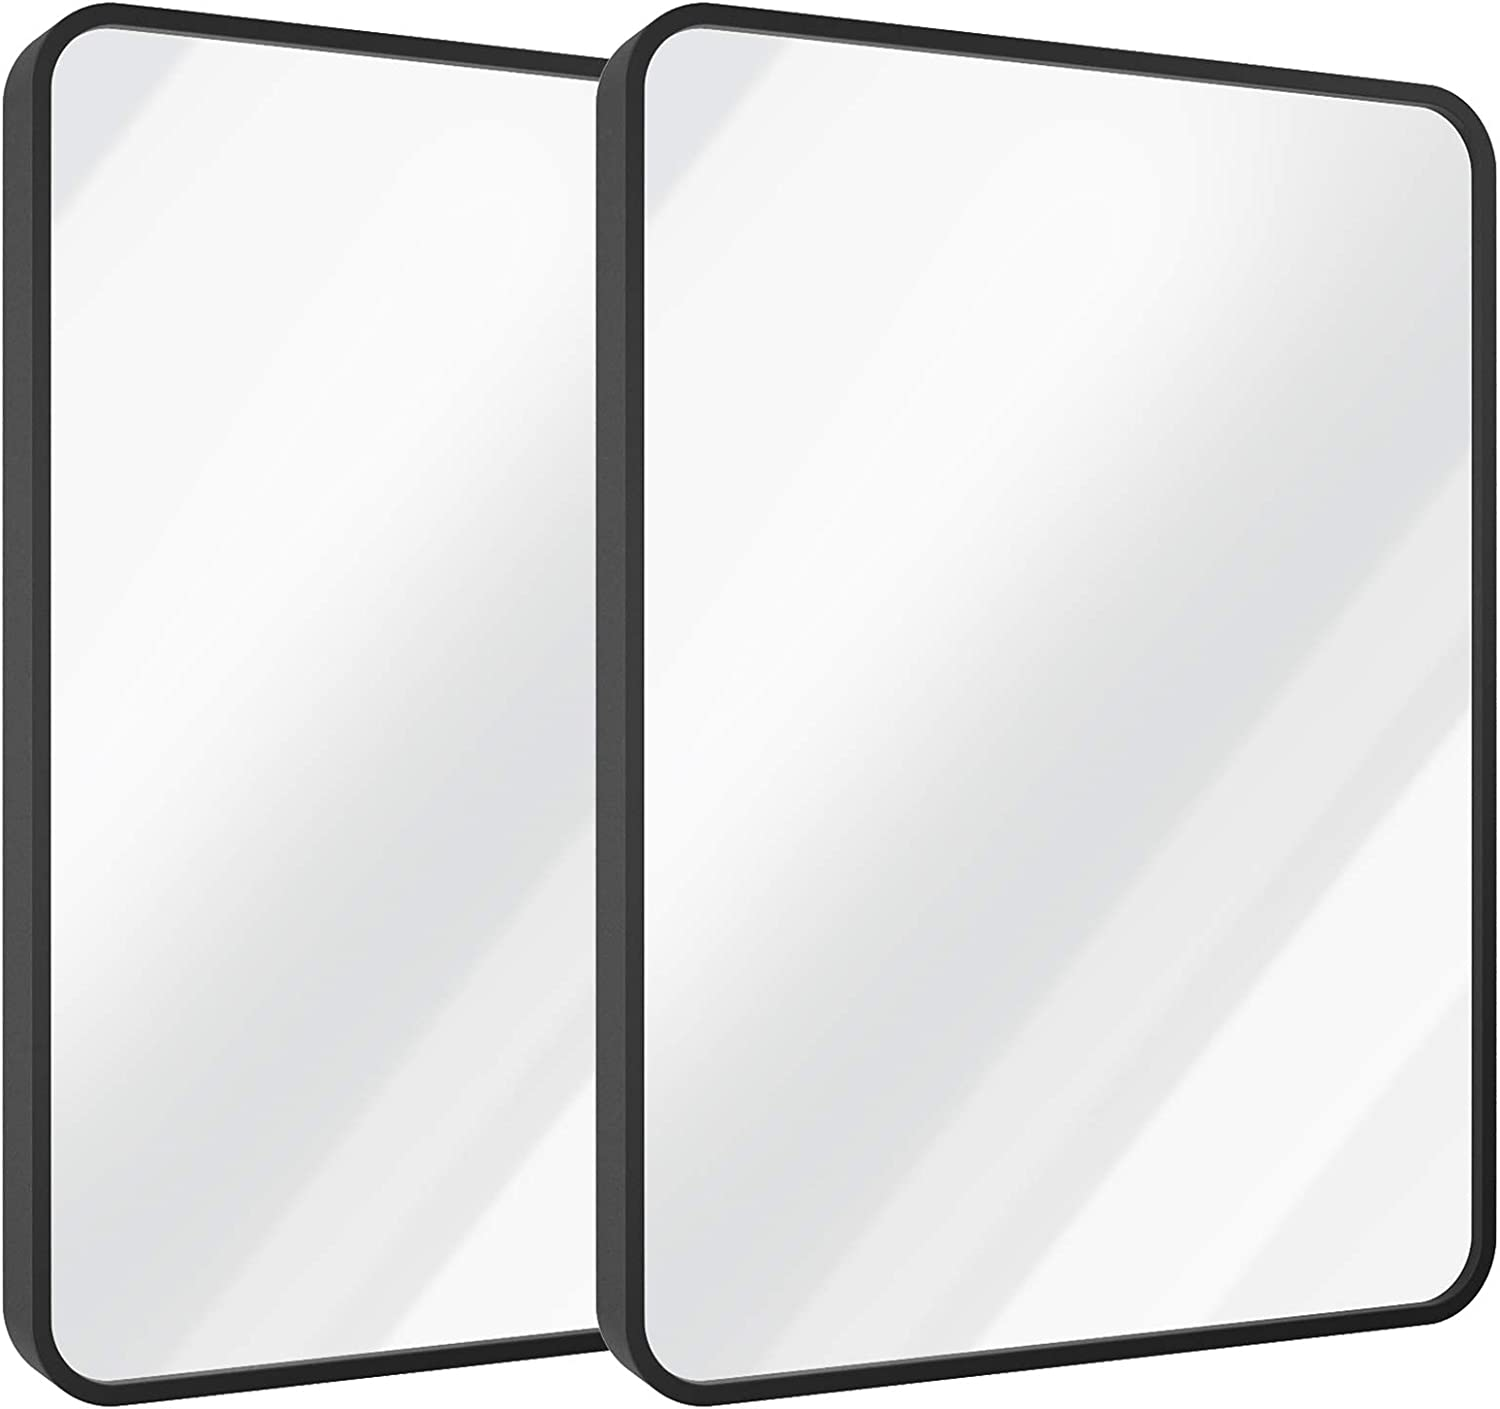 SHINESTAR 2-Pack 24x36 Inch Black Wall Mirrors for Bathroom, Rectangle Metal Frame Matte, Large Vanity Mirror for Wall Decor, Rounded Corner, Farmhouse & Modern Style